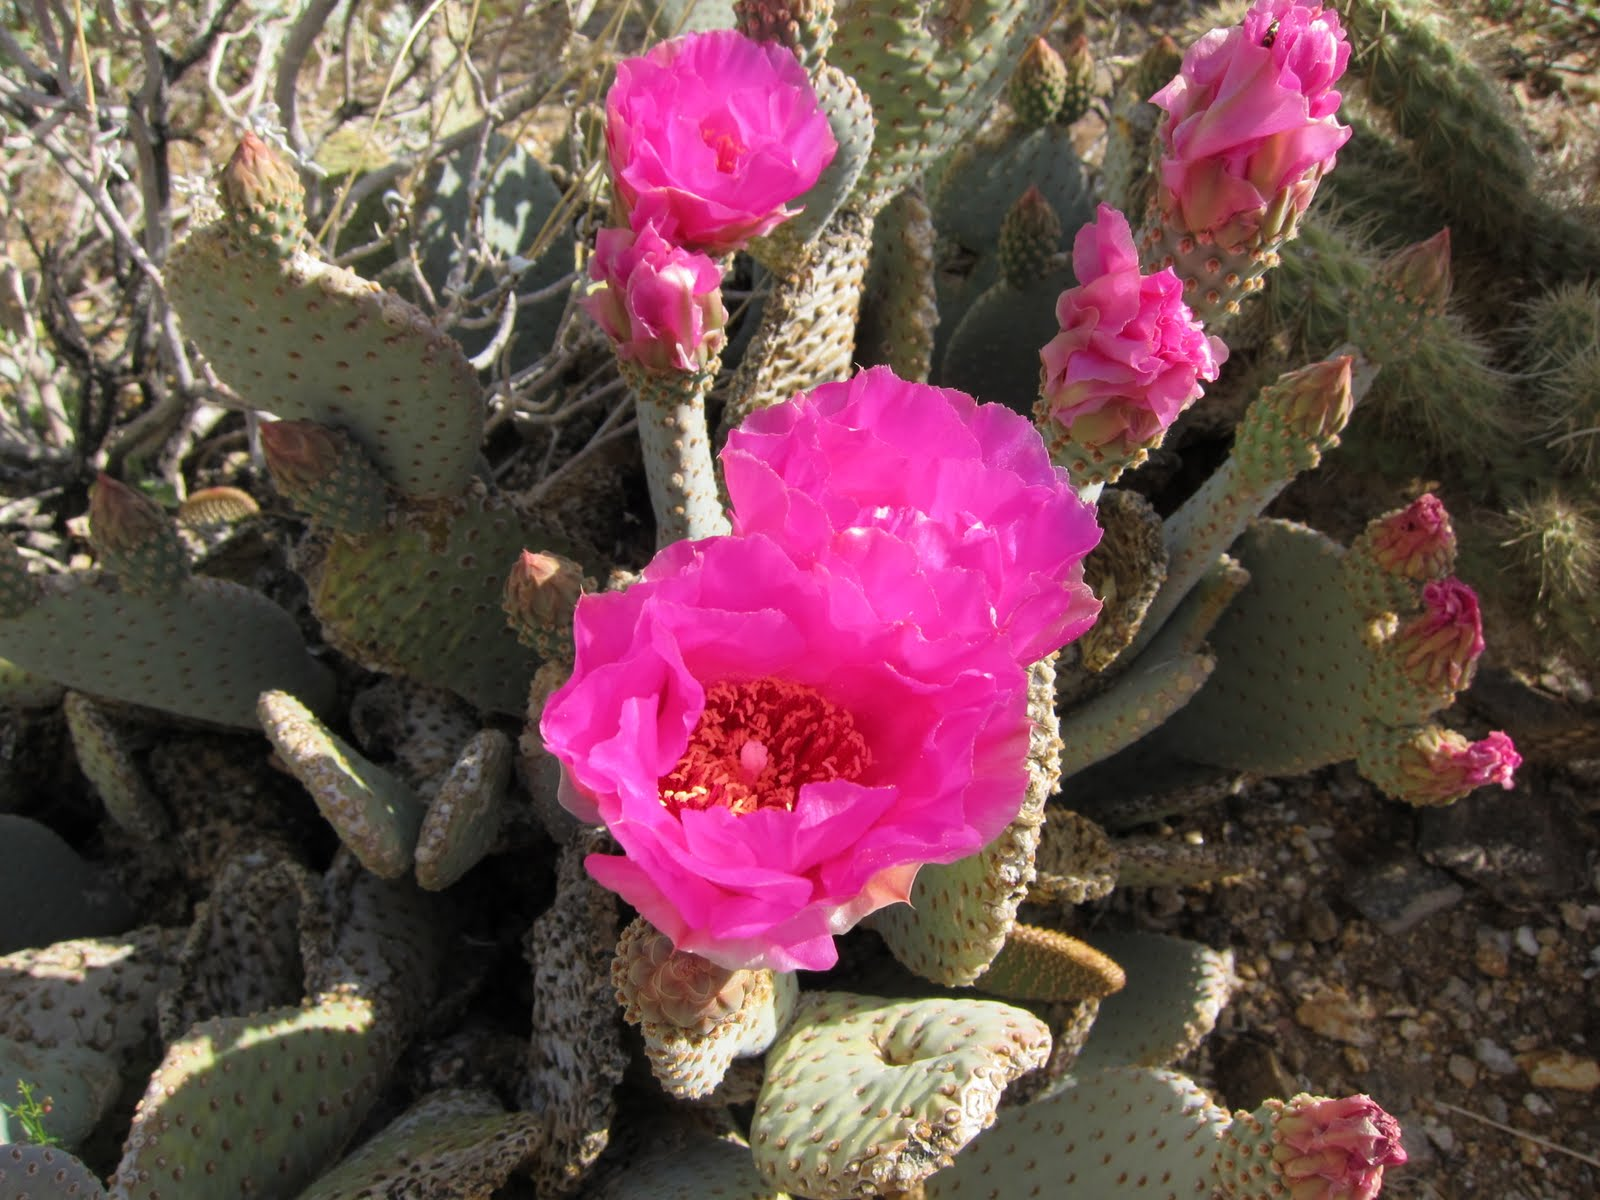 Where we found this blooming Beavertail Cactus